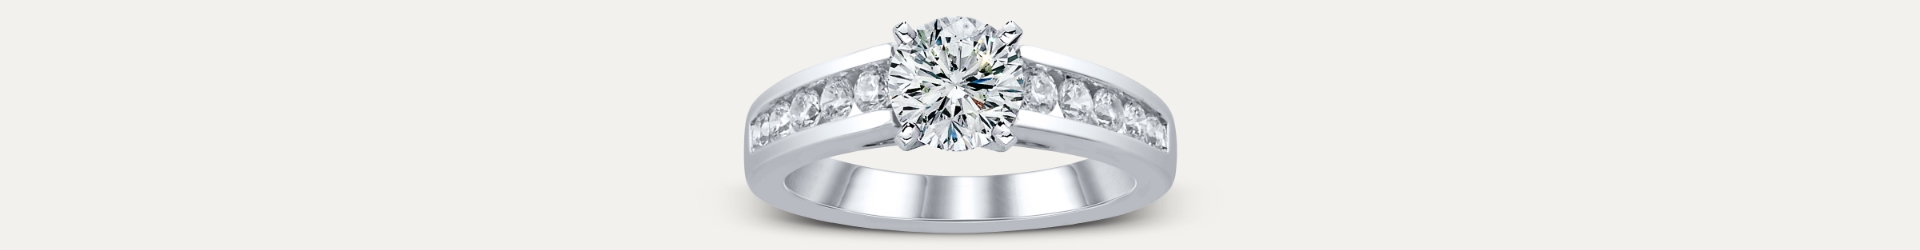 white gold engagement ring, diamonds in channel setting